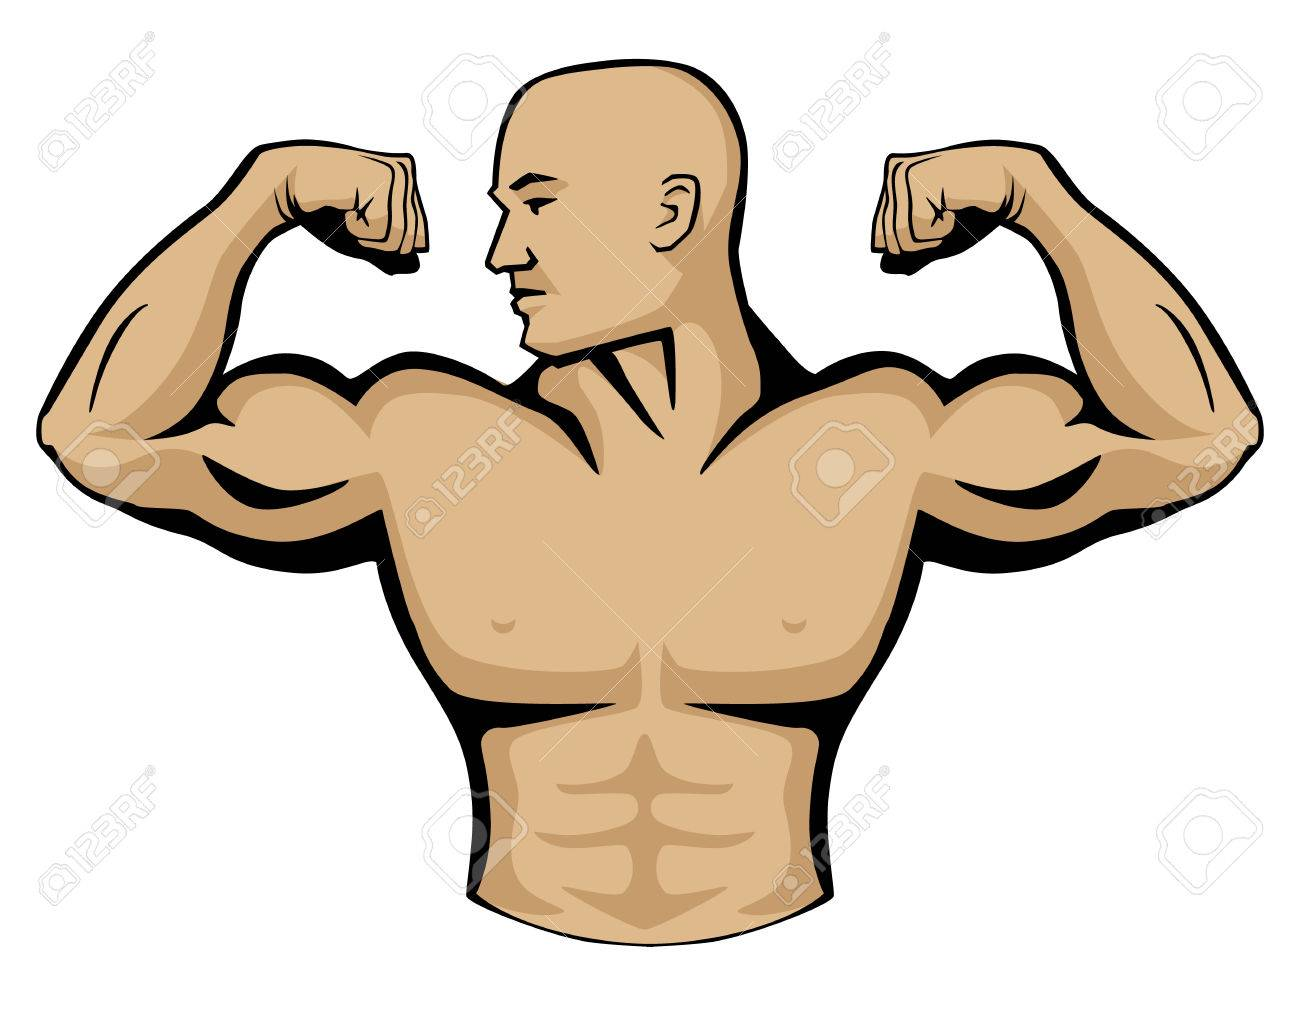 Male body builder vector graphic illustration, flexing arm muscles,...